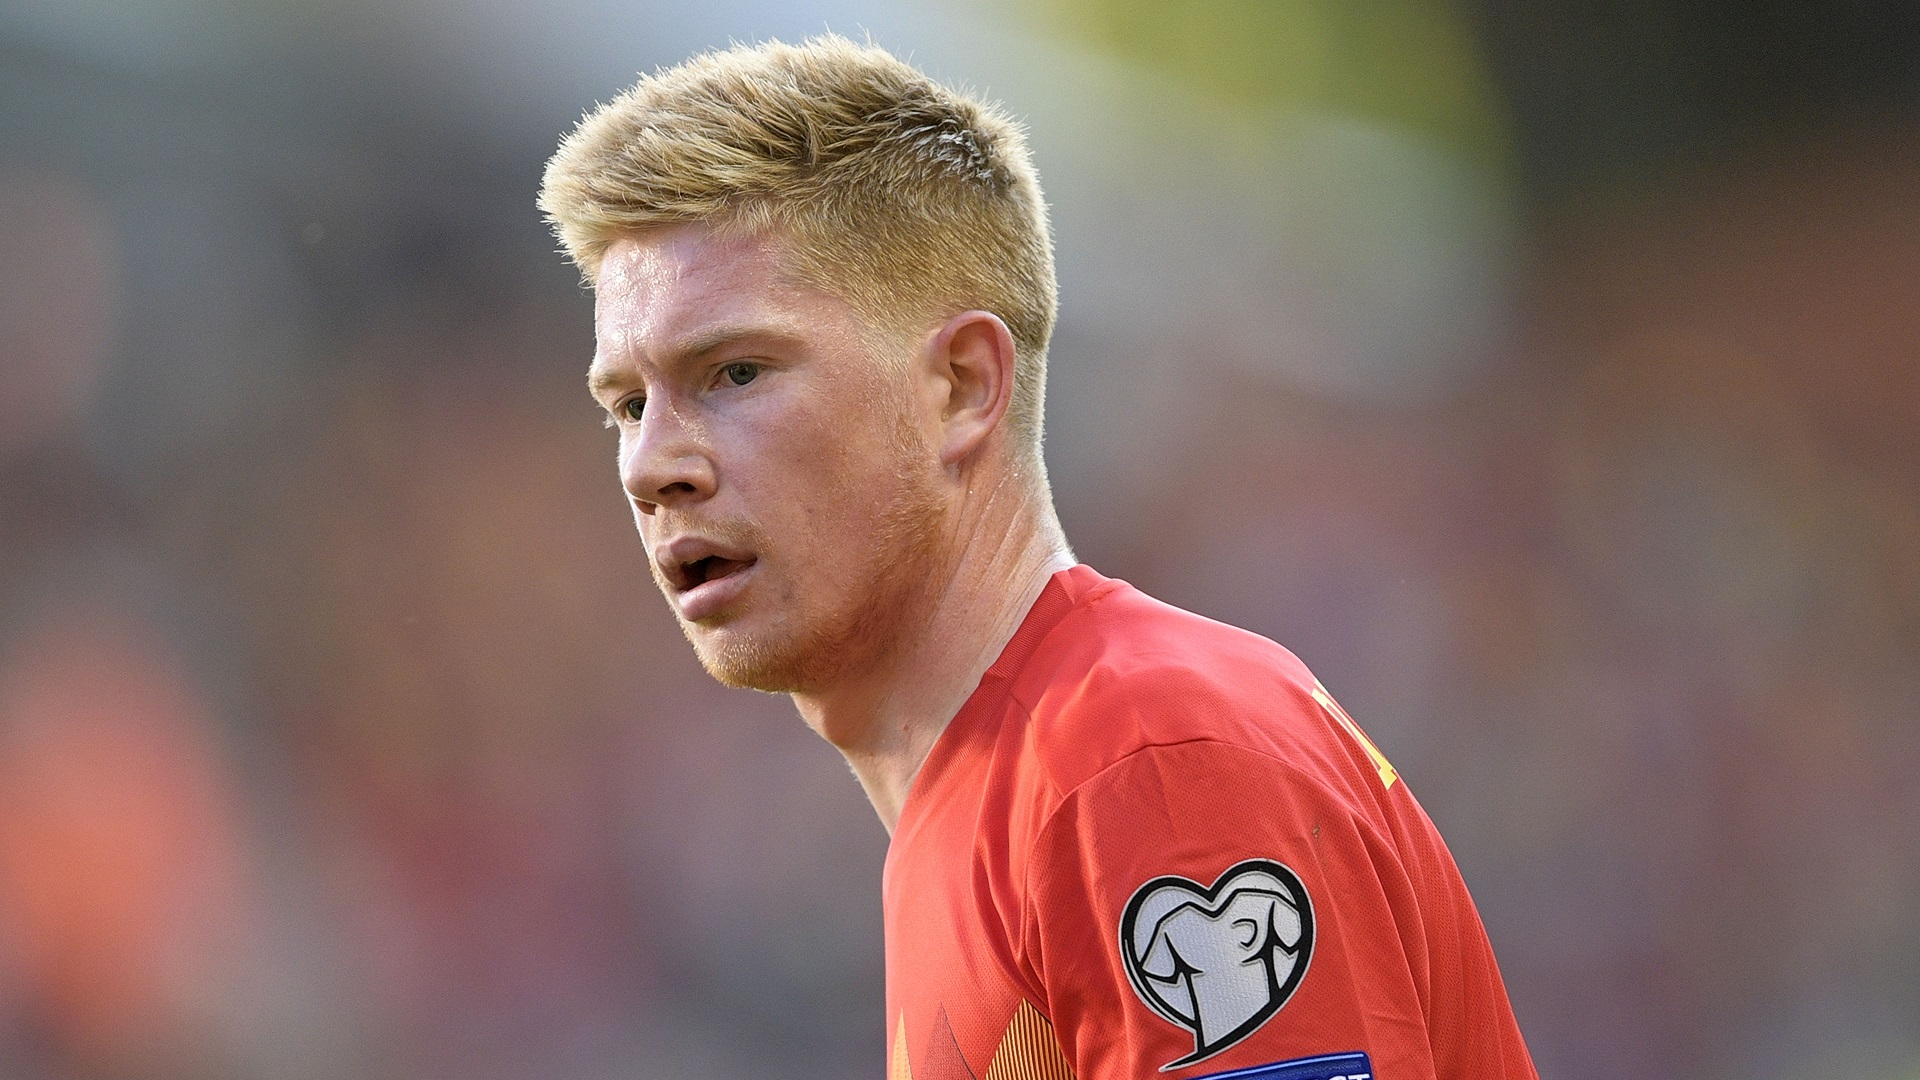 De Bruyne: England can win the World Cup and Euros